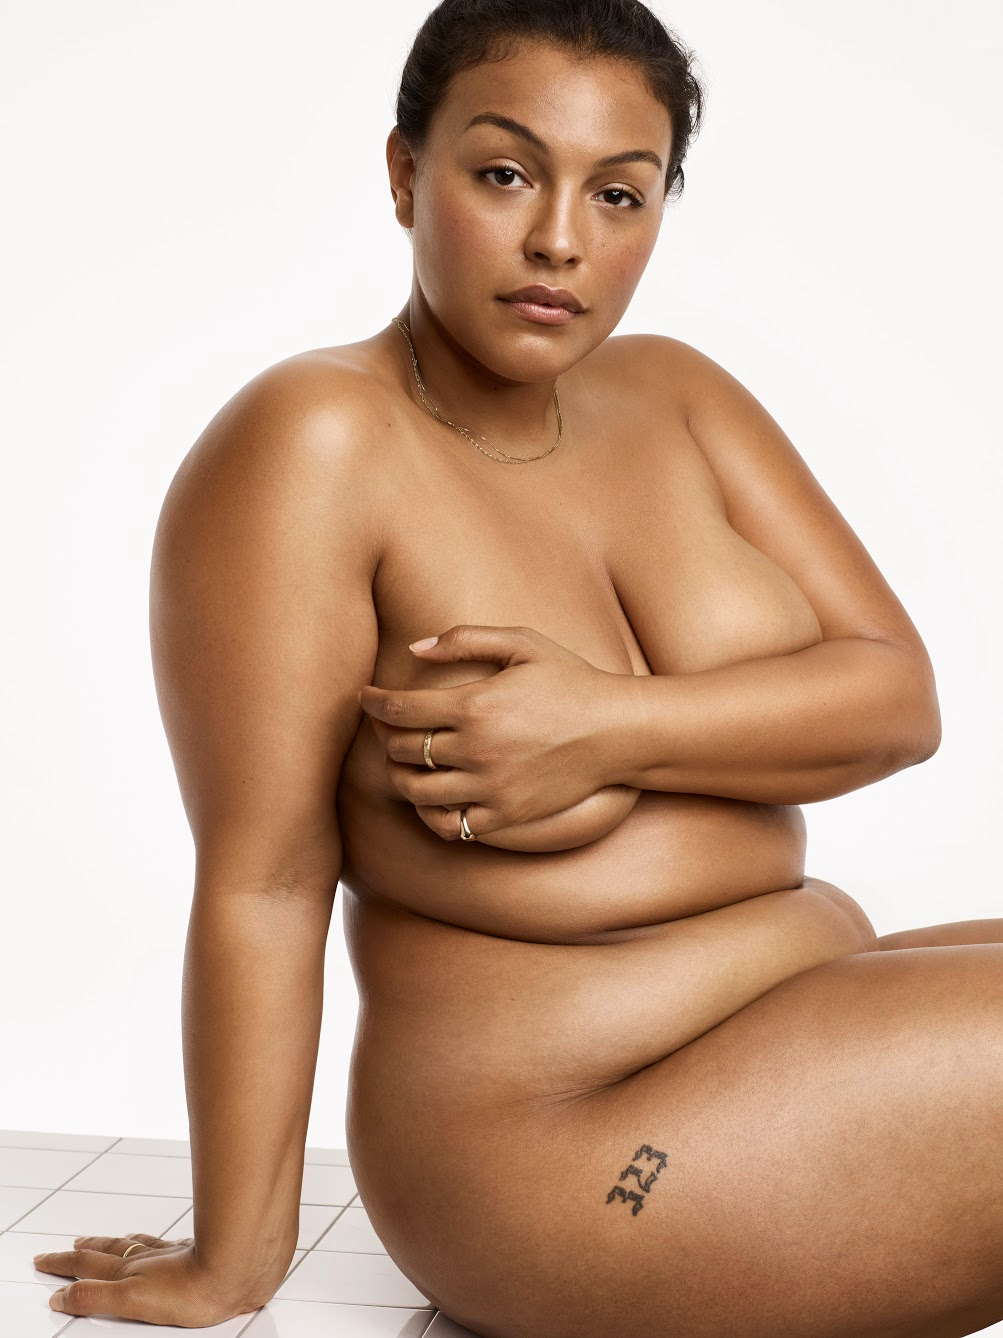 Glossier Launched Its Body-Positive Body Hero Campaign